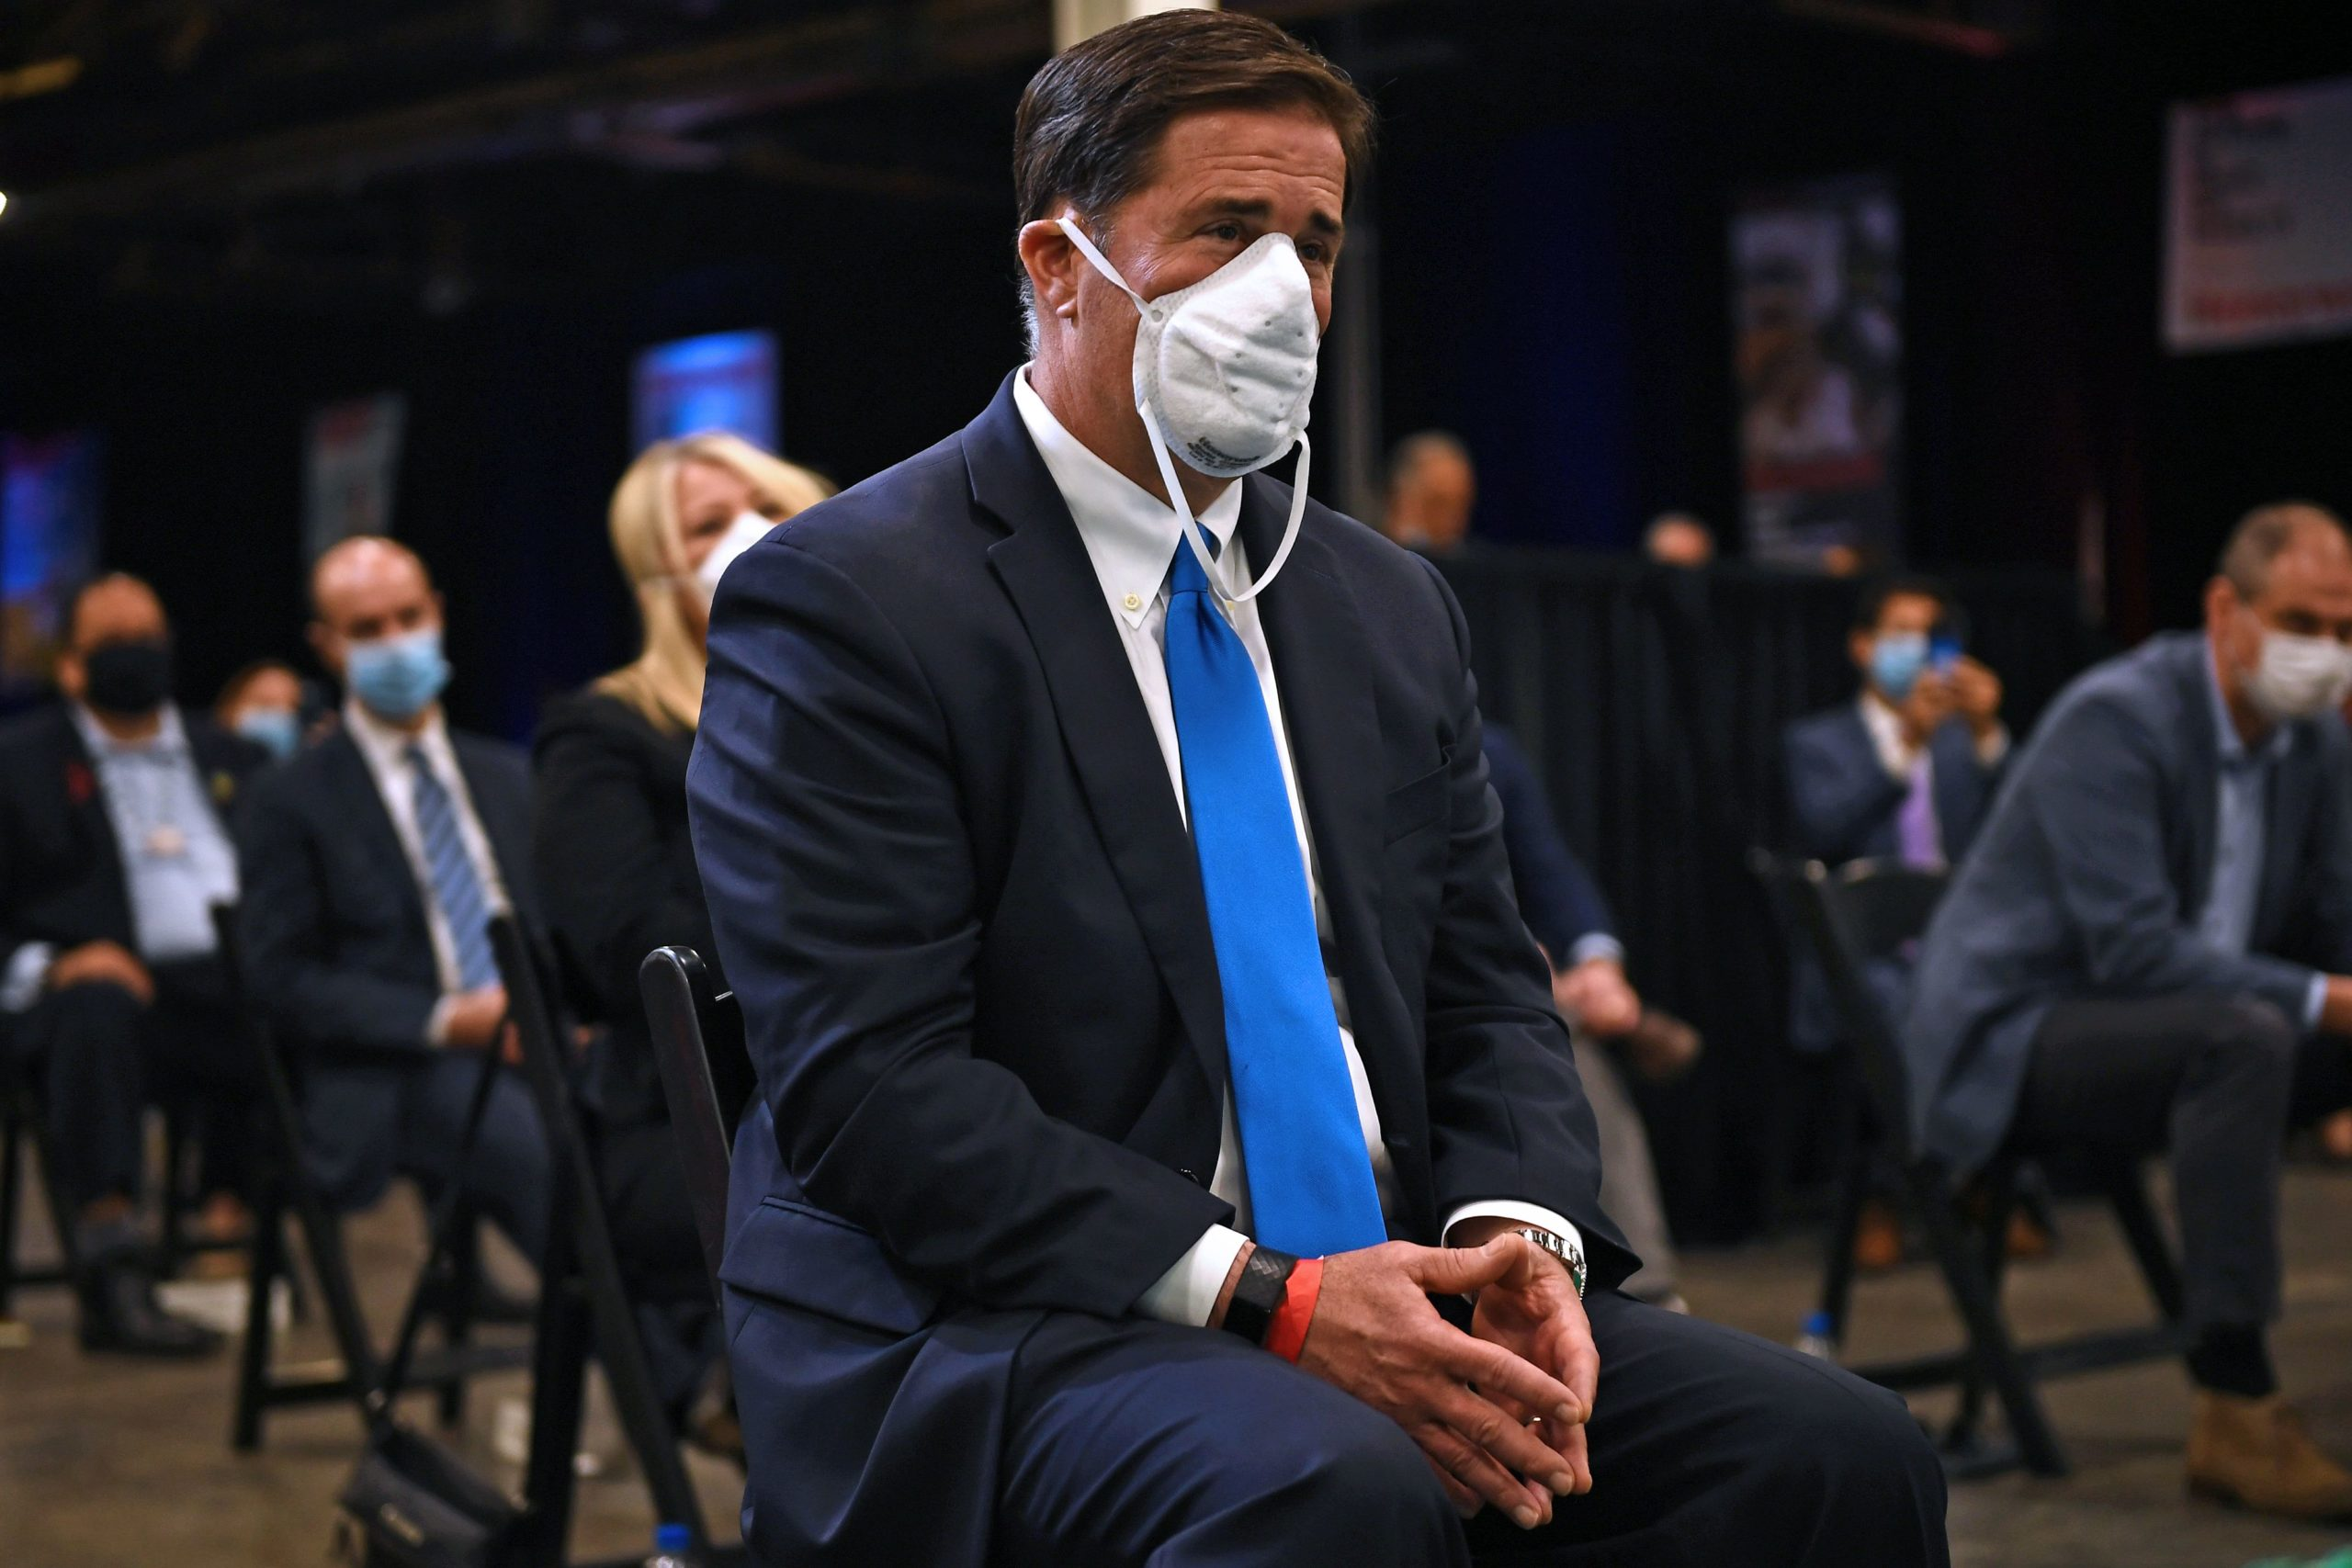 Arizona Gov. Doug Ducey wears a mask as he listens to former President Donald Trump speak in May 2020. (Brendan Smialowski/AFP via Getty Images)